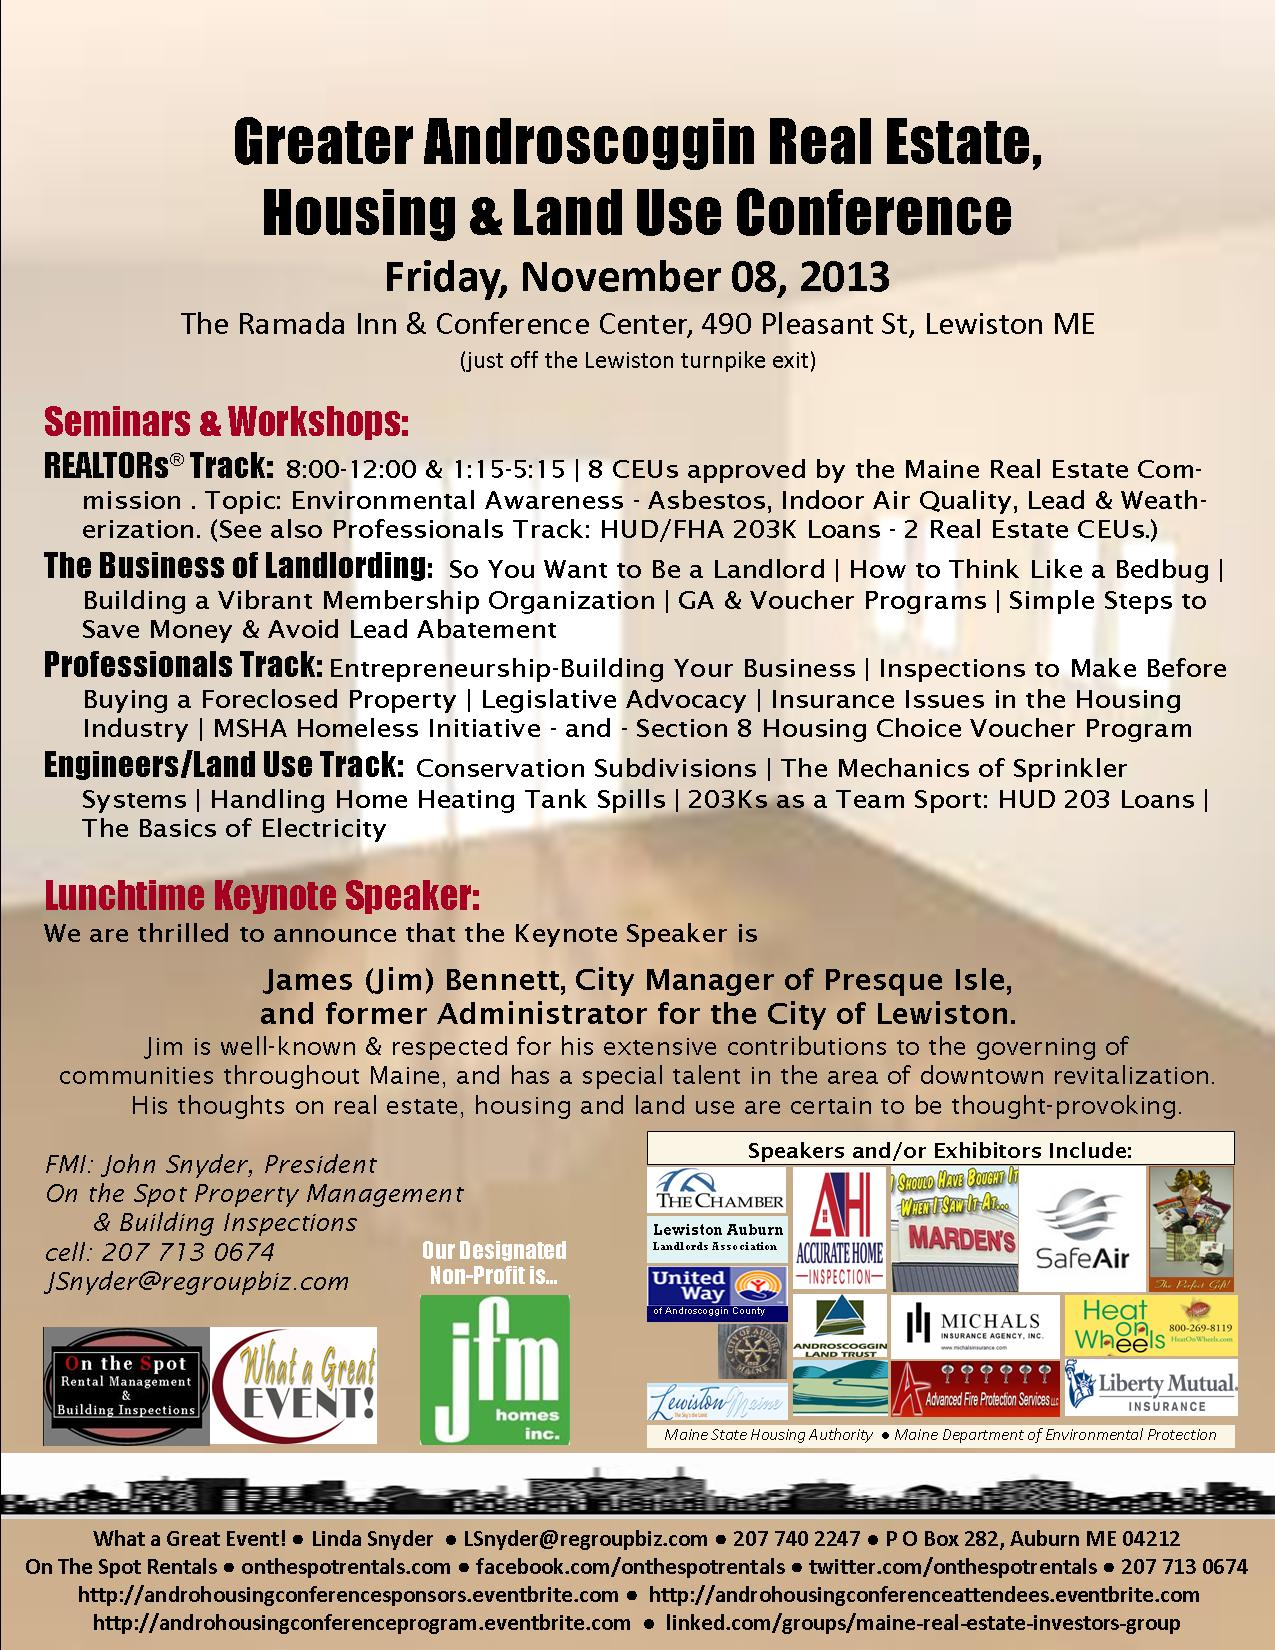 Andro Real Estate, Housing & Land Use Conference